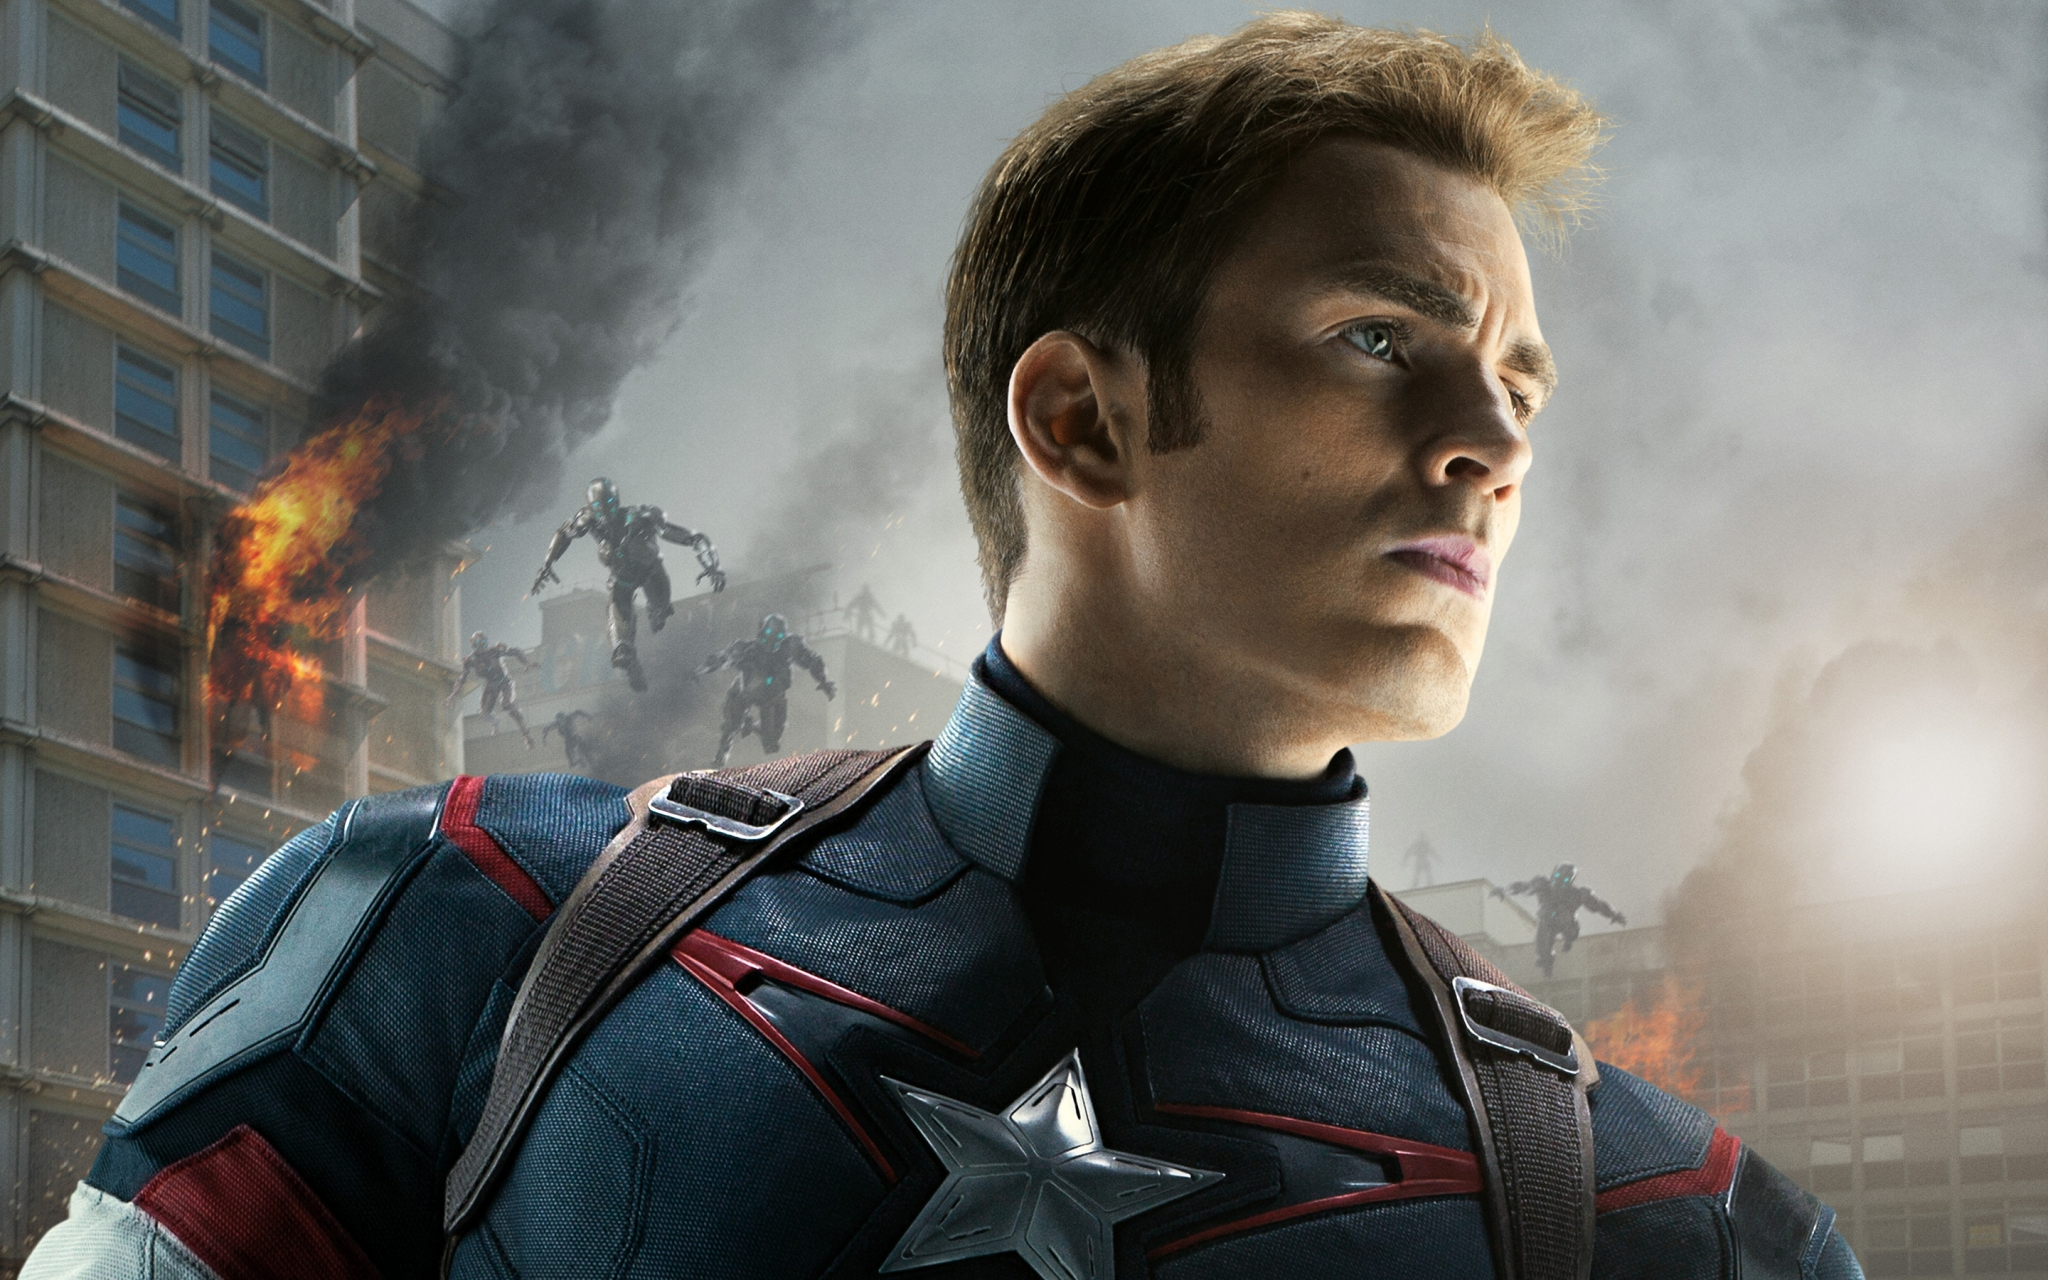 Hd wallpaper captain america - Captain America Free Hd Wallpapers